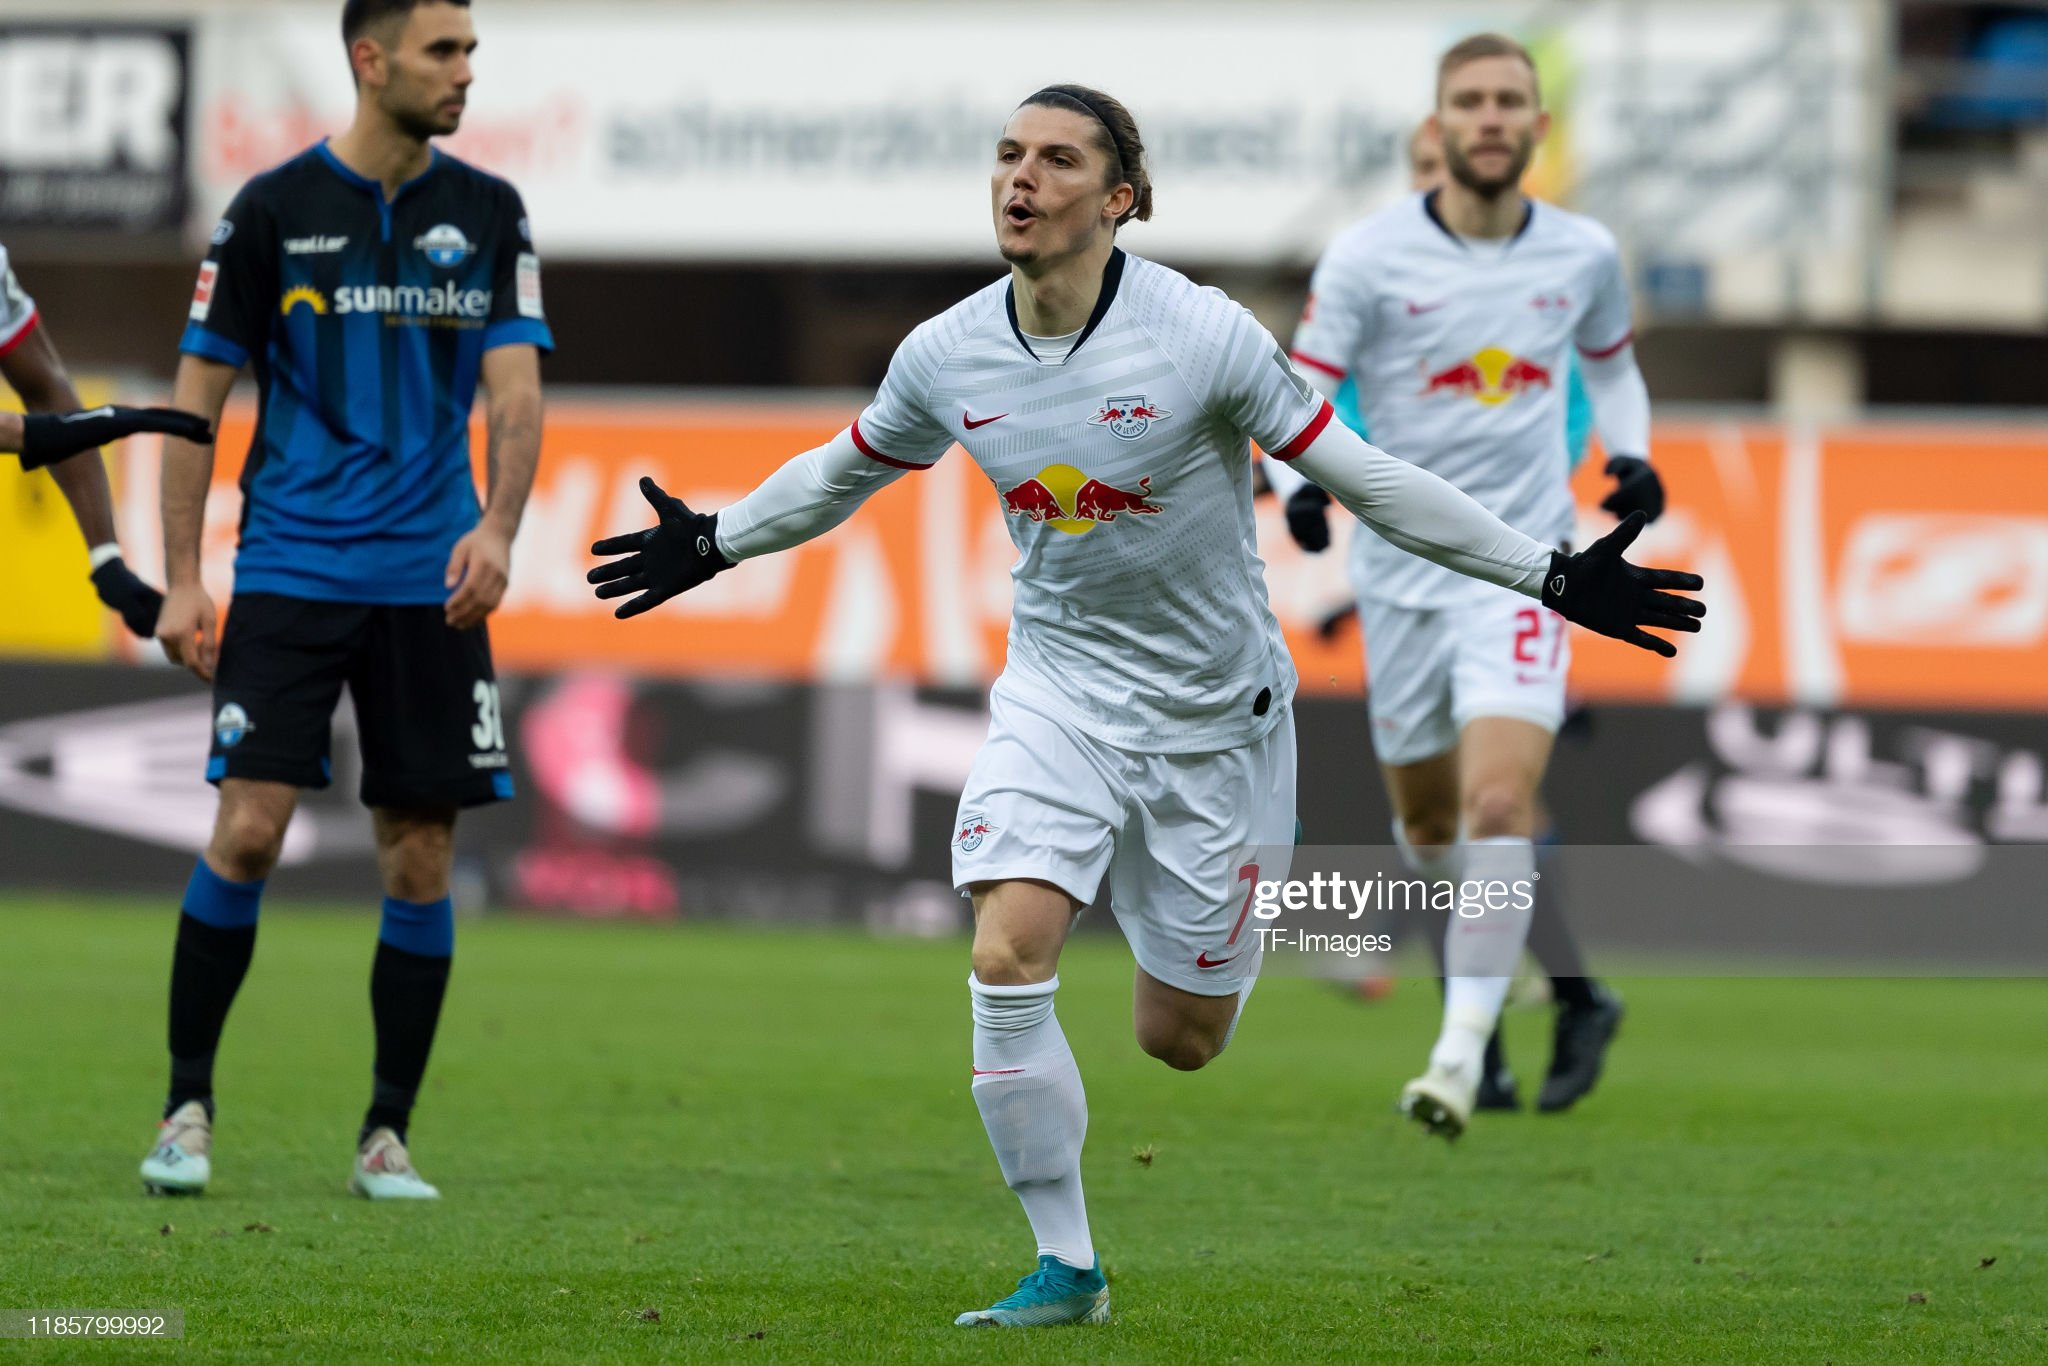 RB Leipzig vs Paderborn preview, prediction and odds